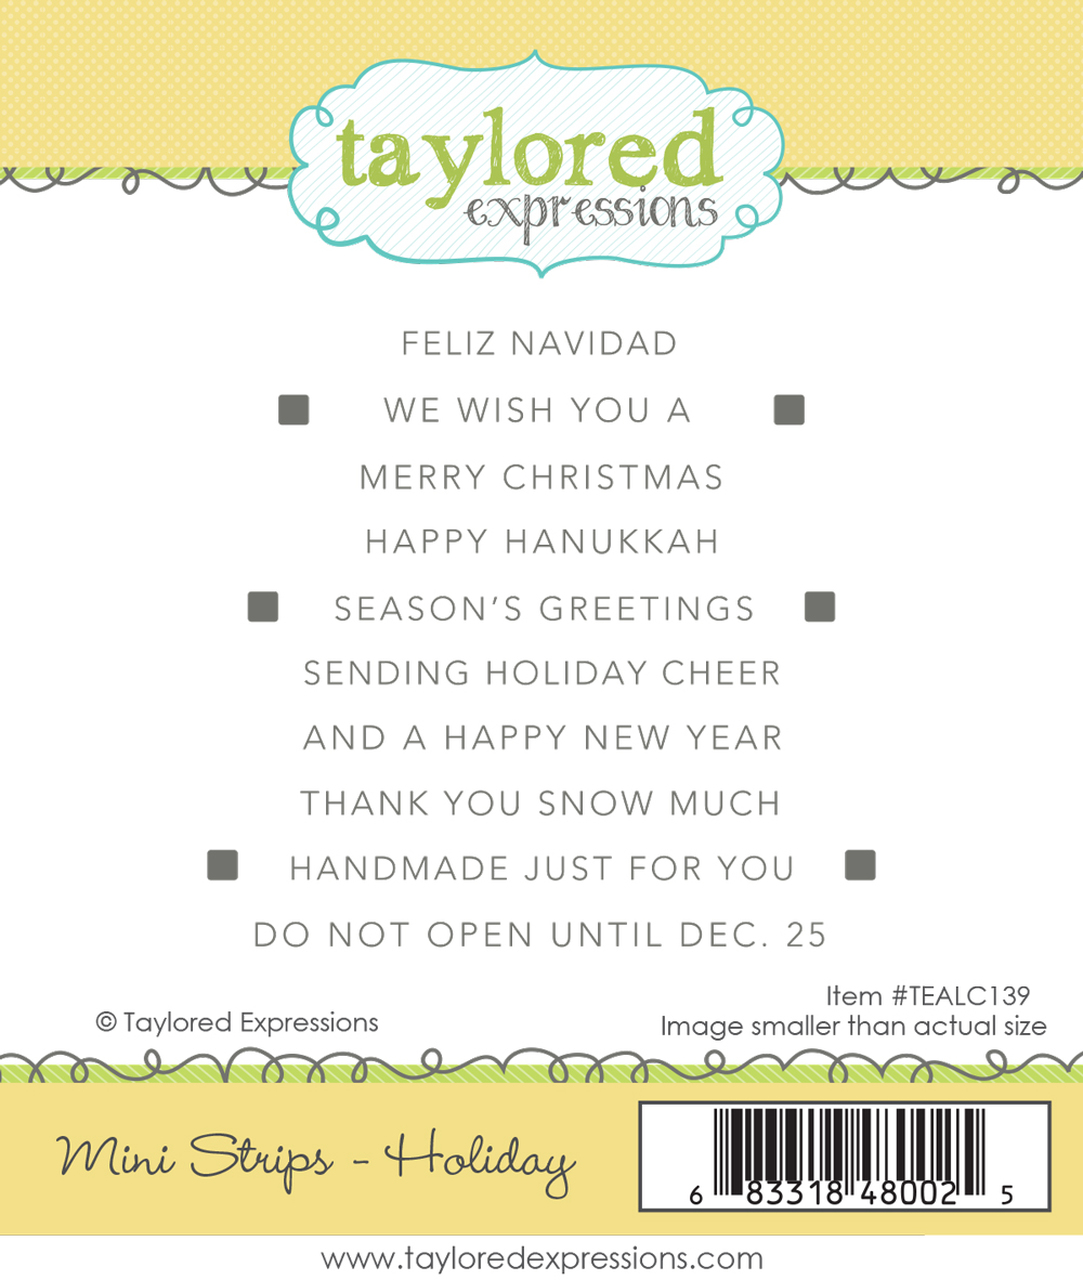 Taylored Expression - Mini Strips - Holiday